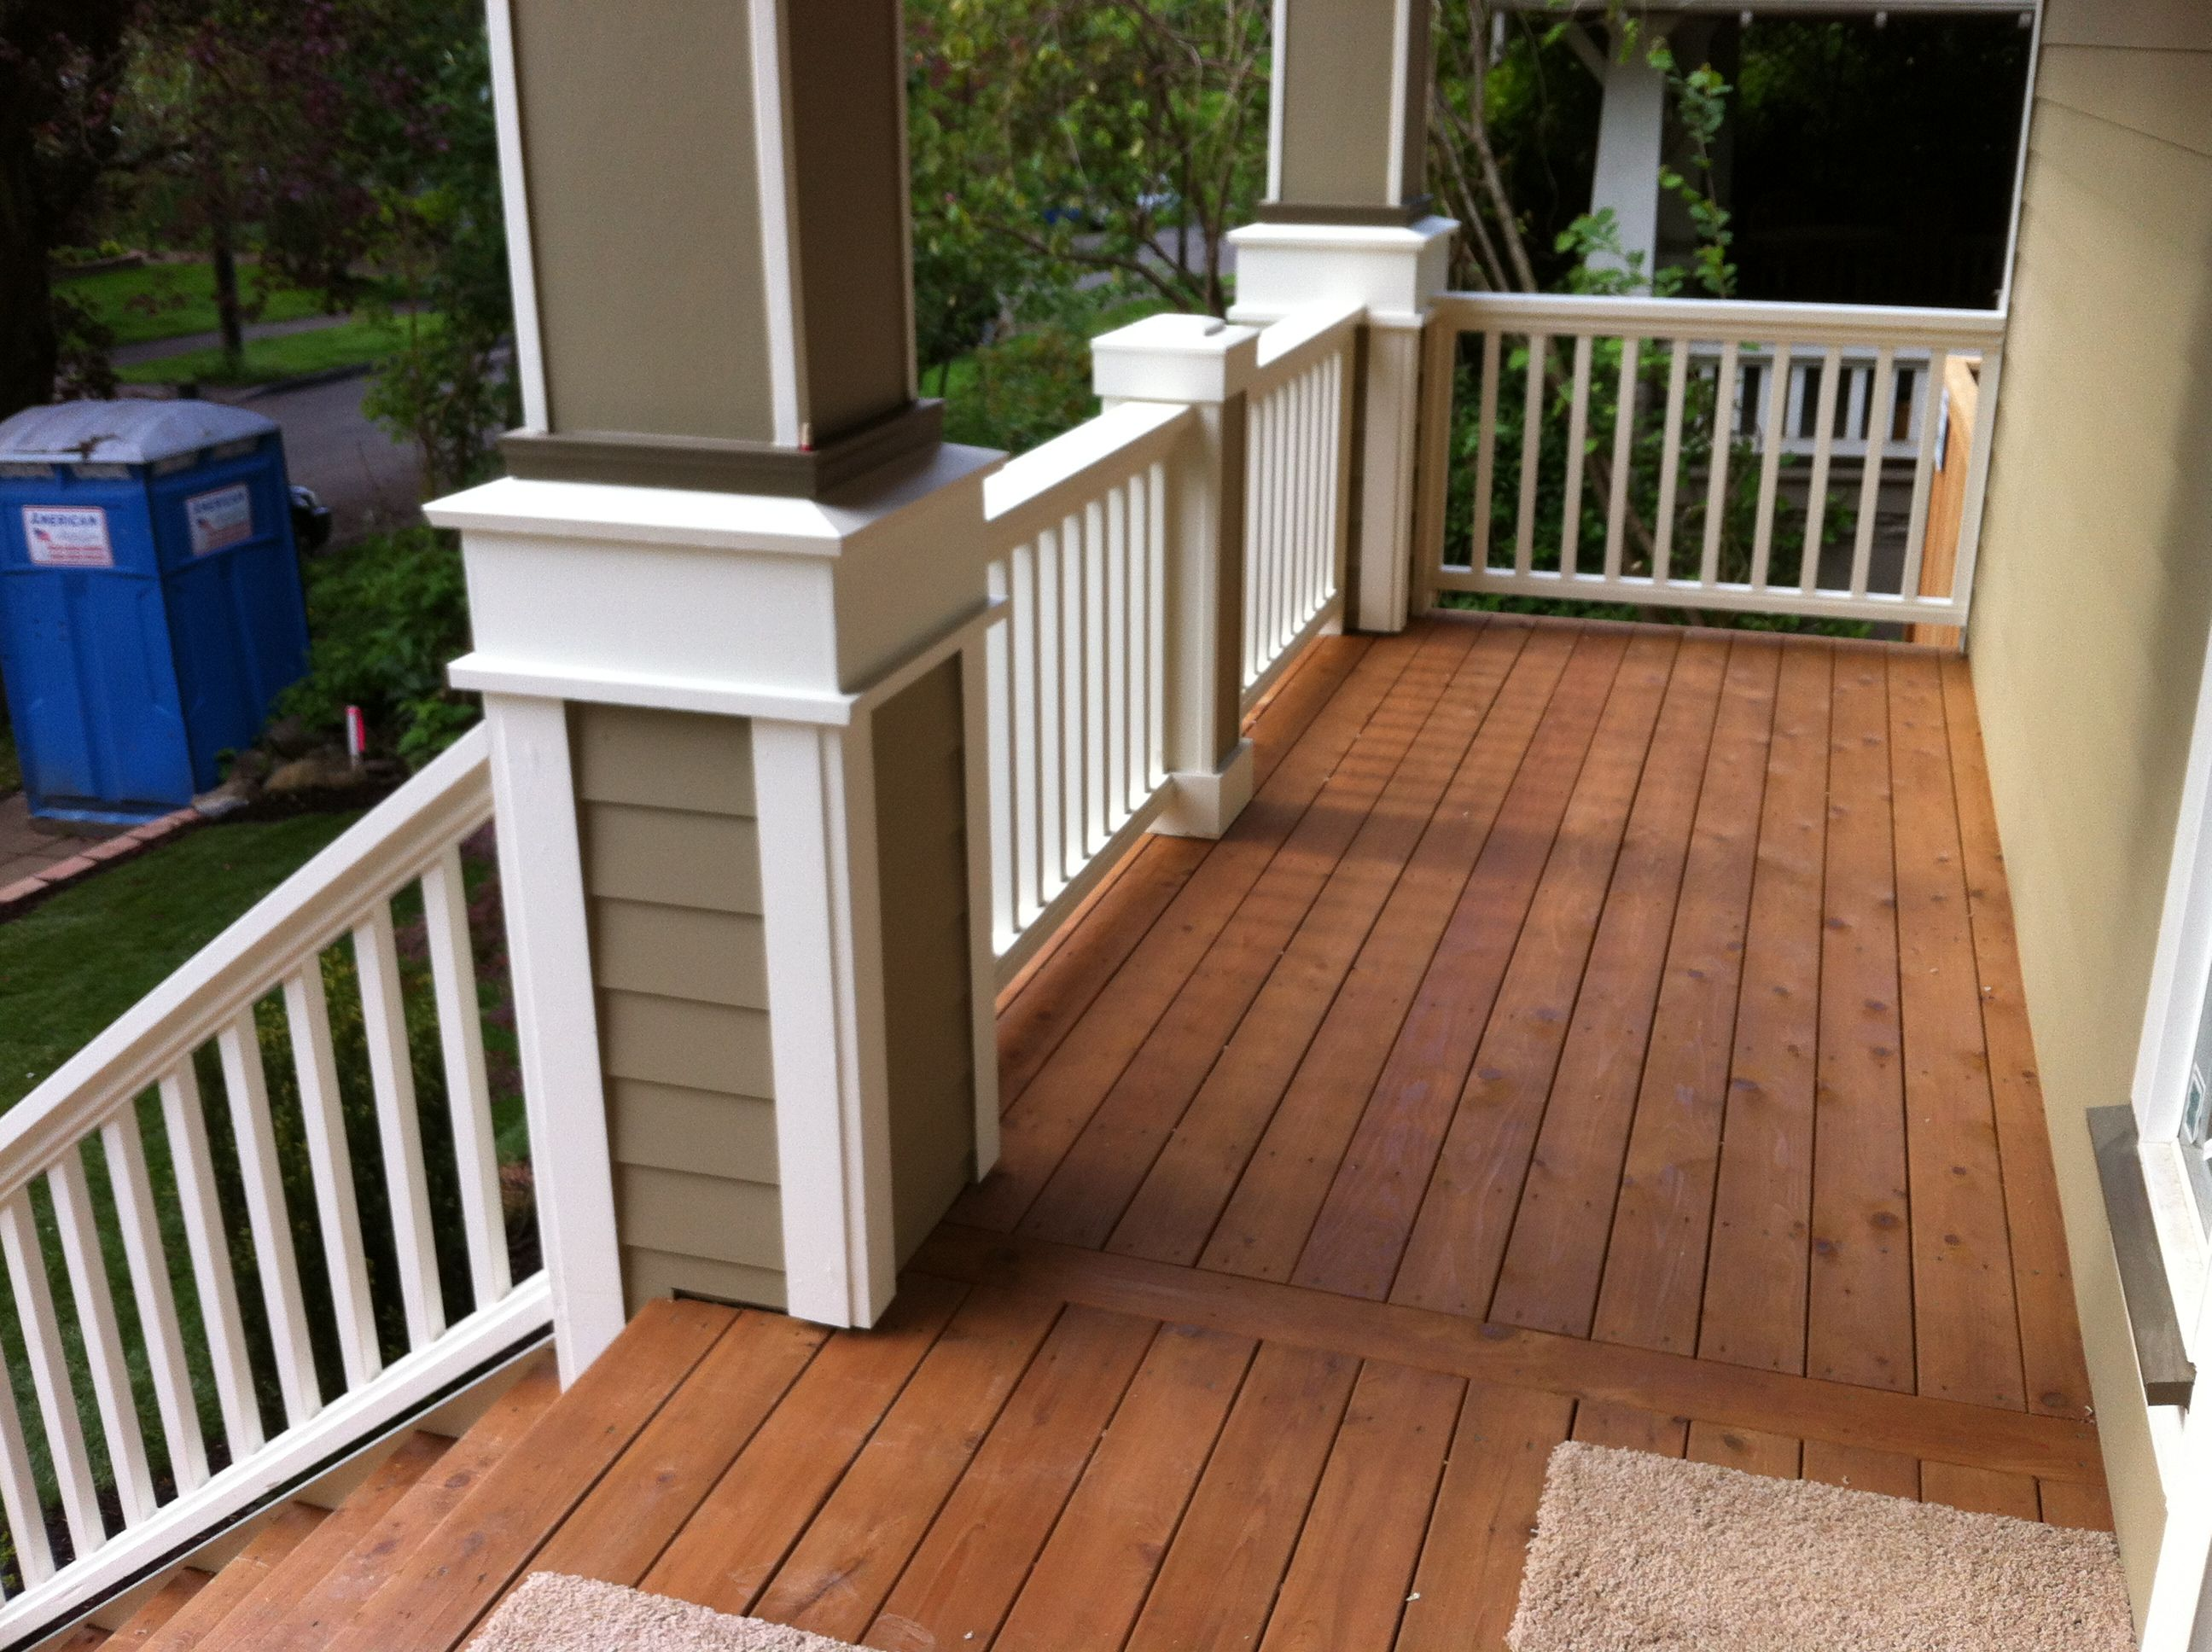 Stained Cedar Decking With Wood Railing. Idea For The Front Porch.